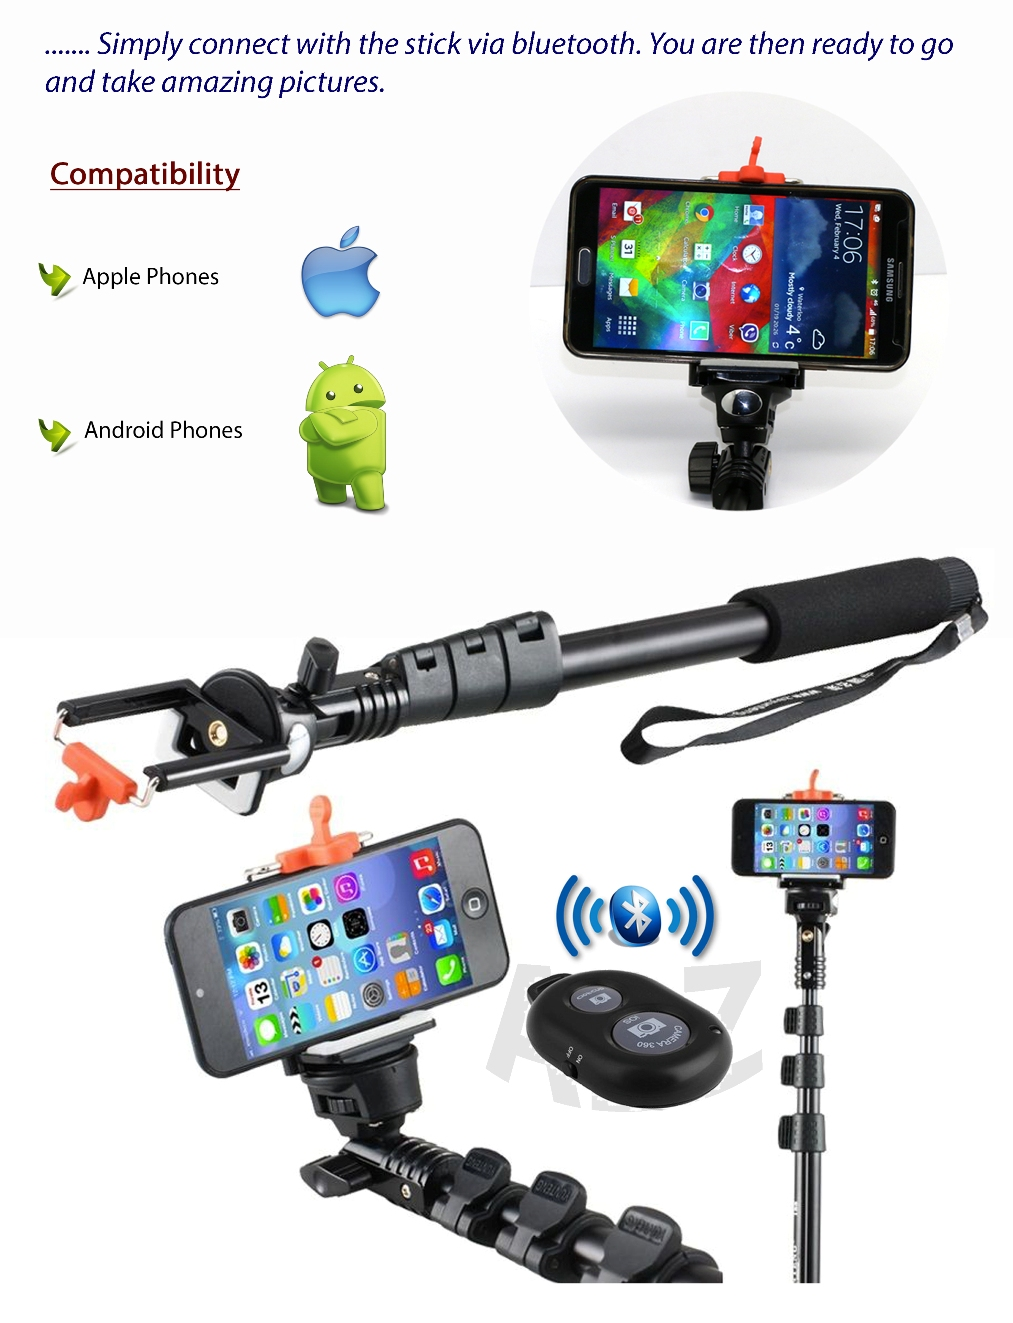 heavy duty monopod selfie stick telescopic bluetooth remote iphone 6 5s 4s 6plus ebay. Black Bedroom Furniture Sets. Home Design Ideas